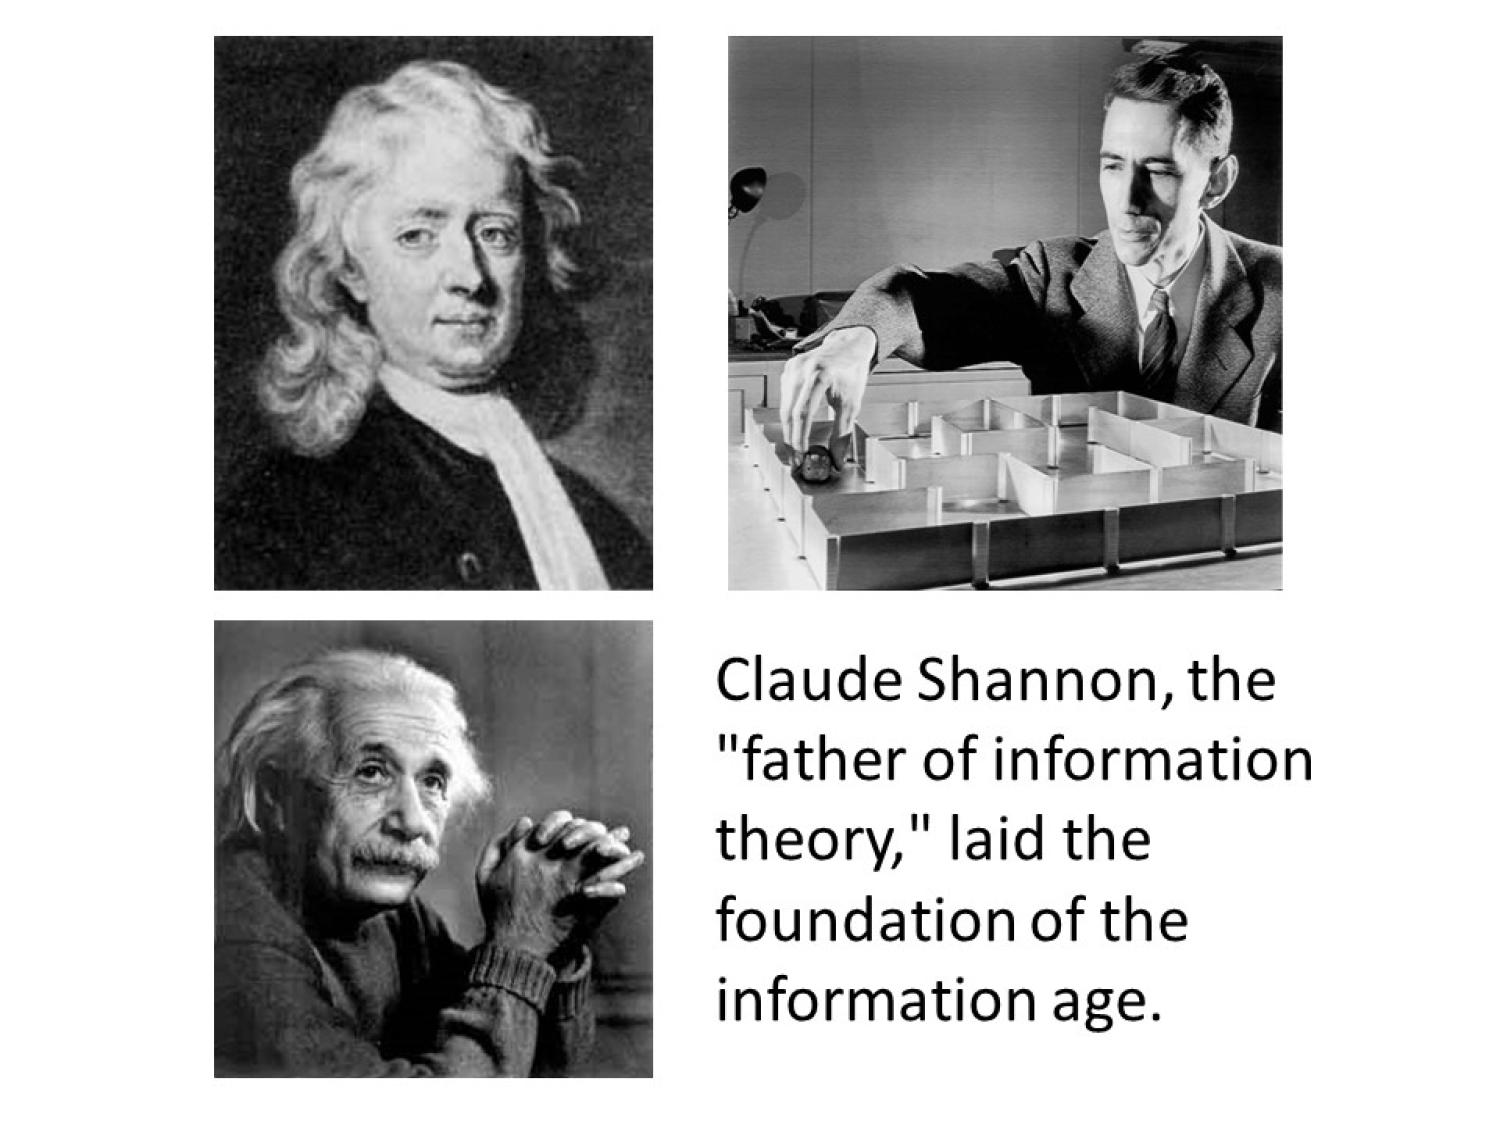 """Claude Shannon, the """"father of information theory,"""" laid the foundation of the information age."""